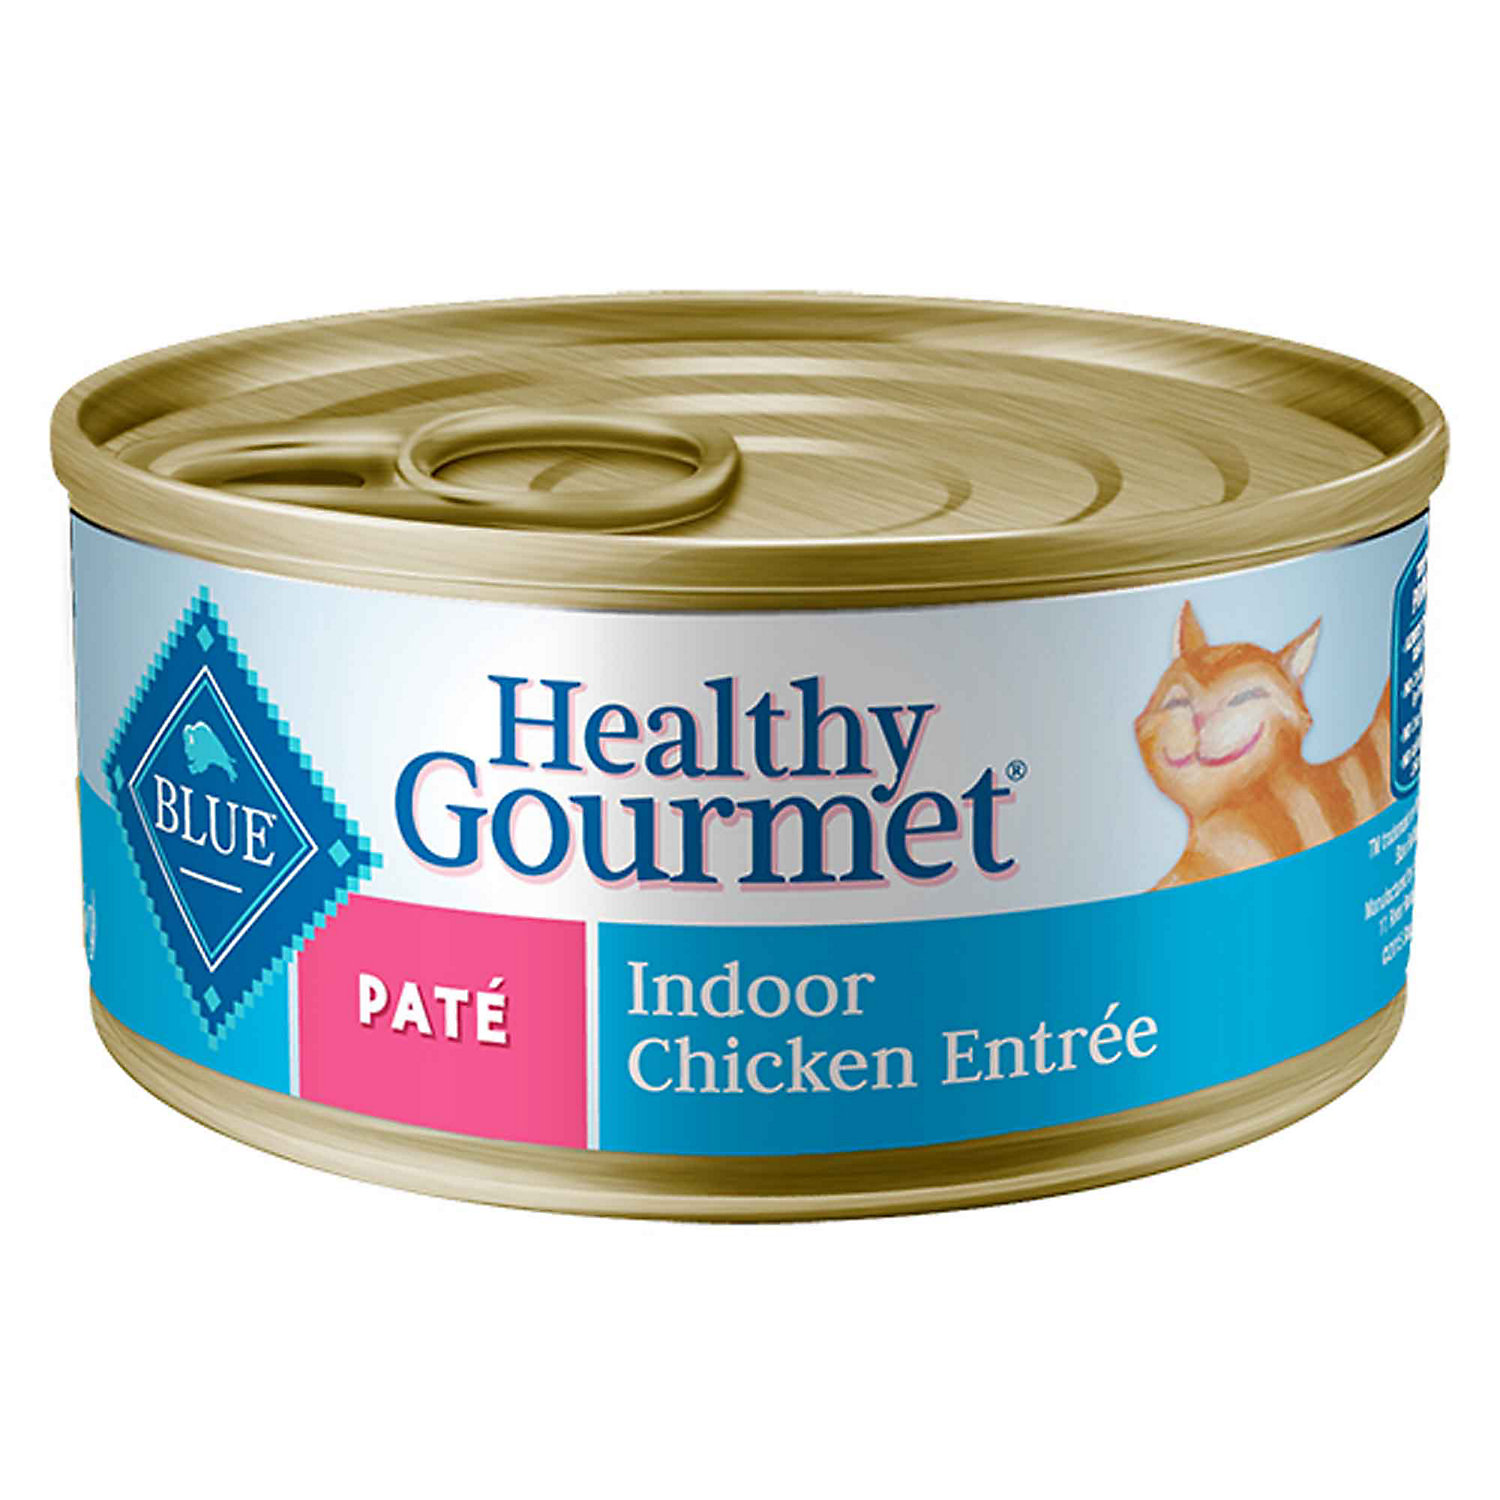 Blue Buffalo Healthy Gourmet Pate Indoor Chicken Adult Canned Cat Food 3 Oz. Case Of 24